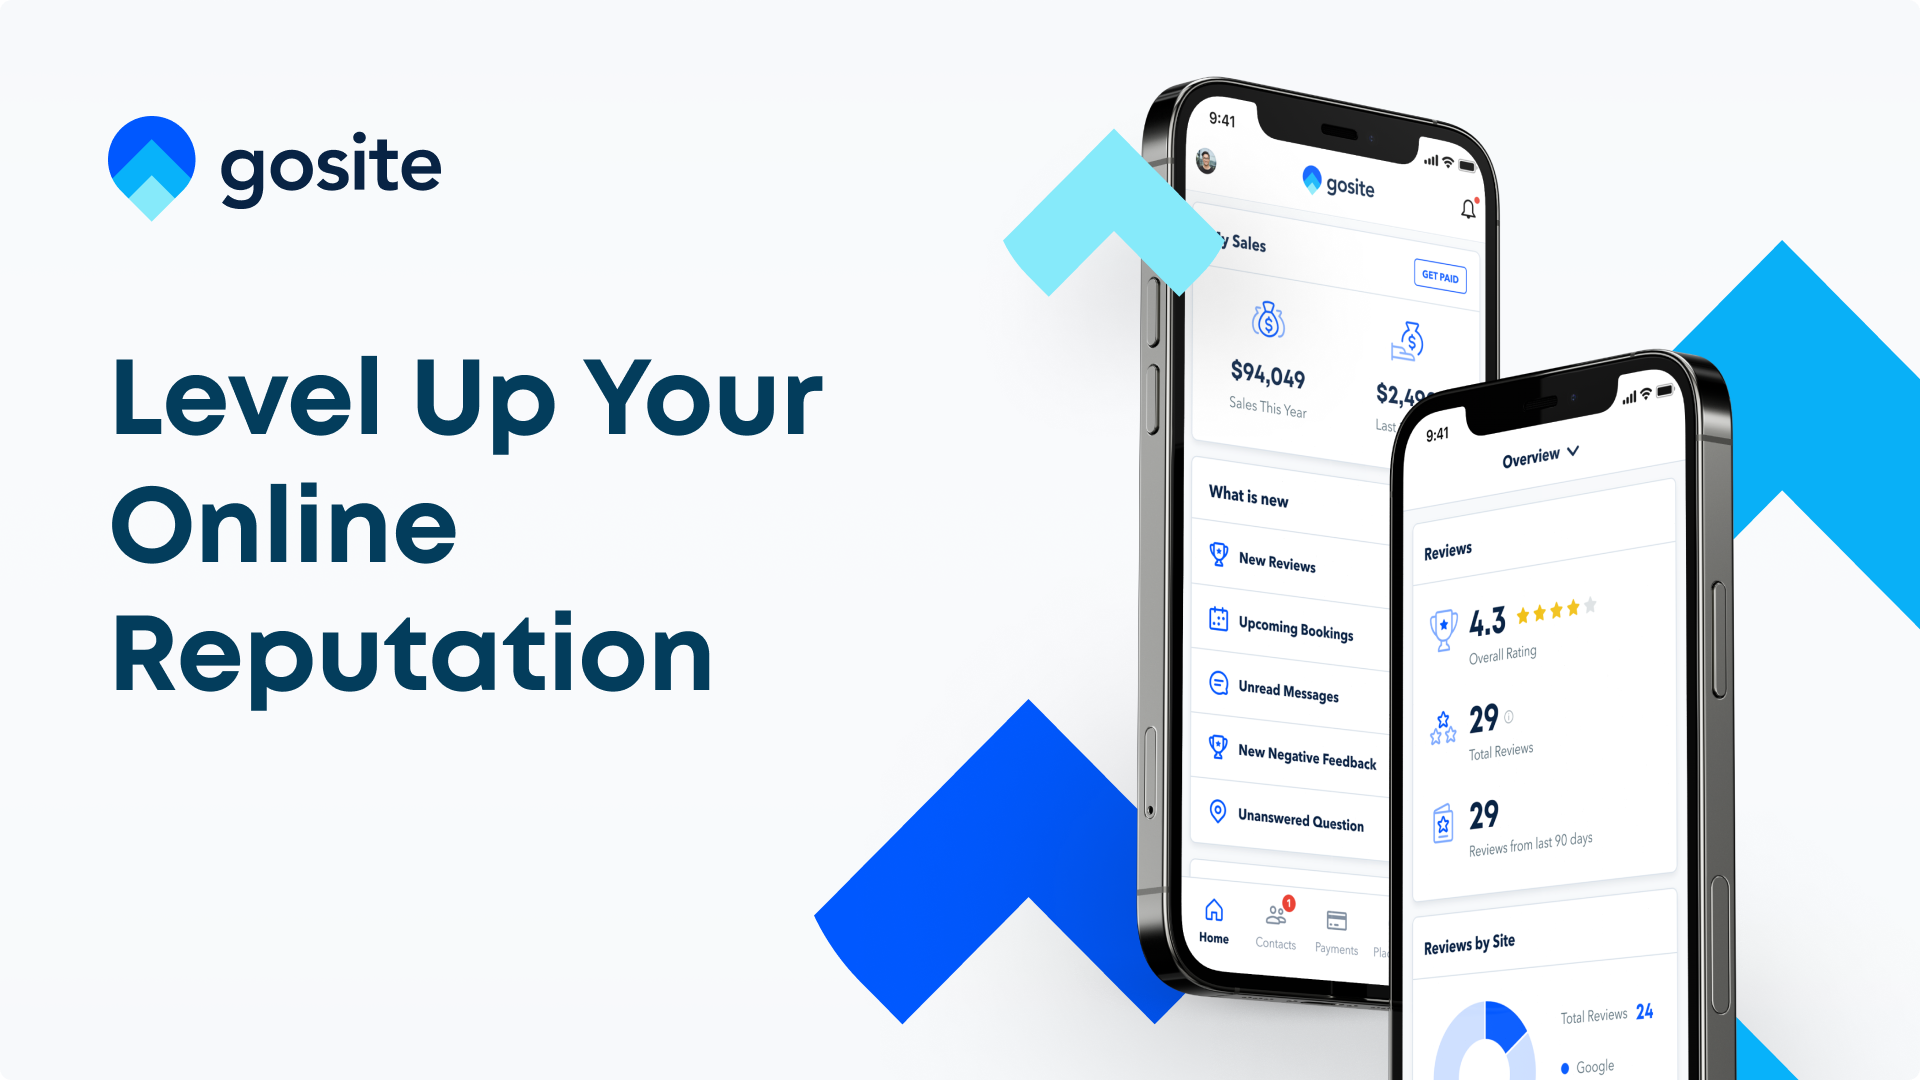 Workshop_ Level Up Your Online Reputation with Gosite